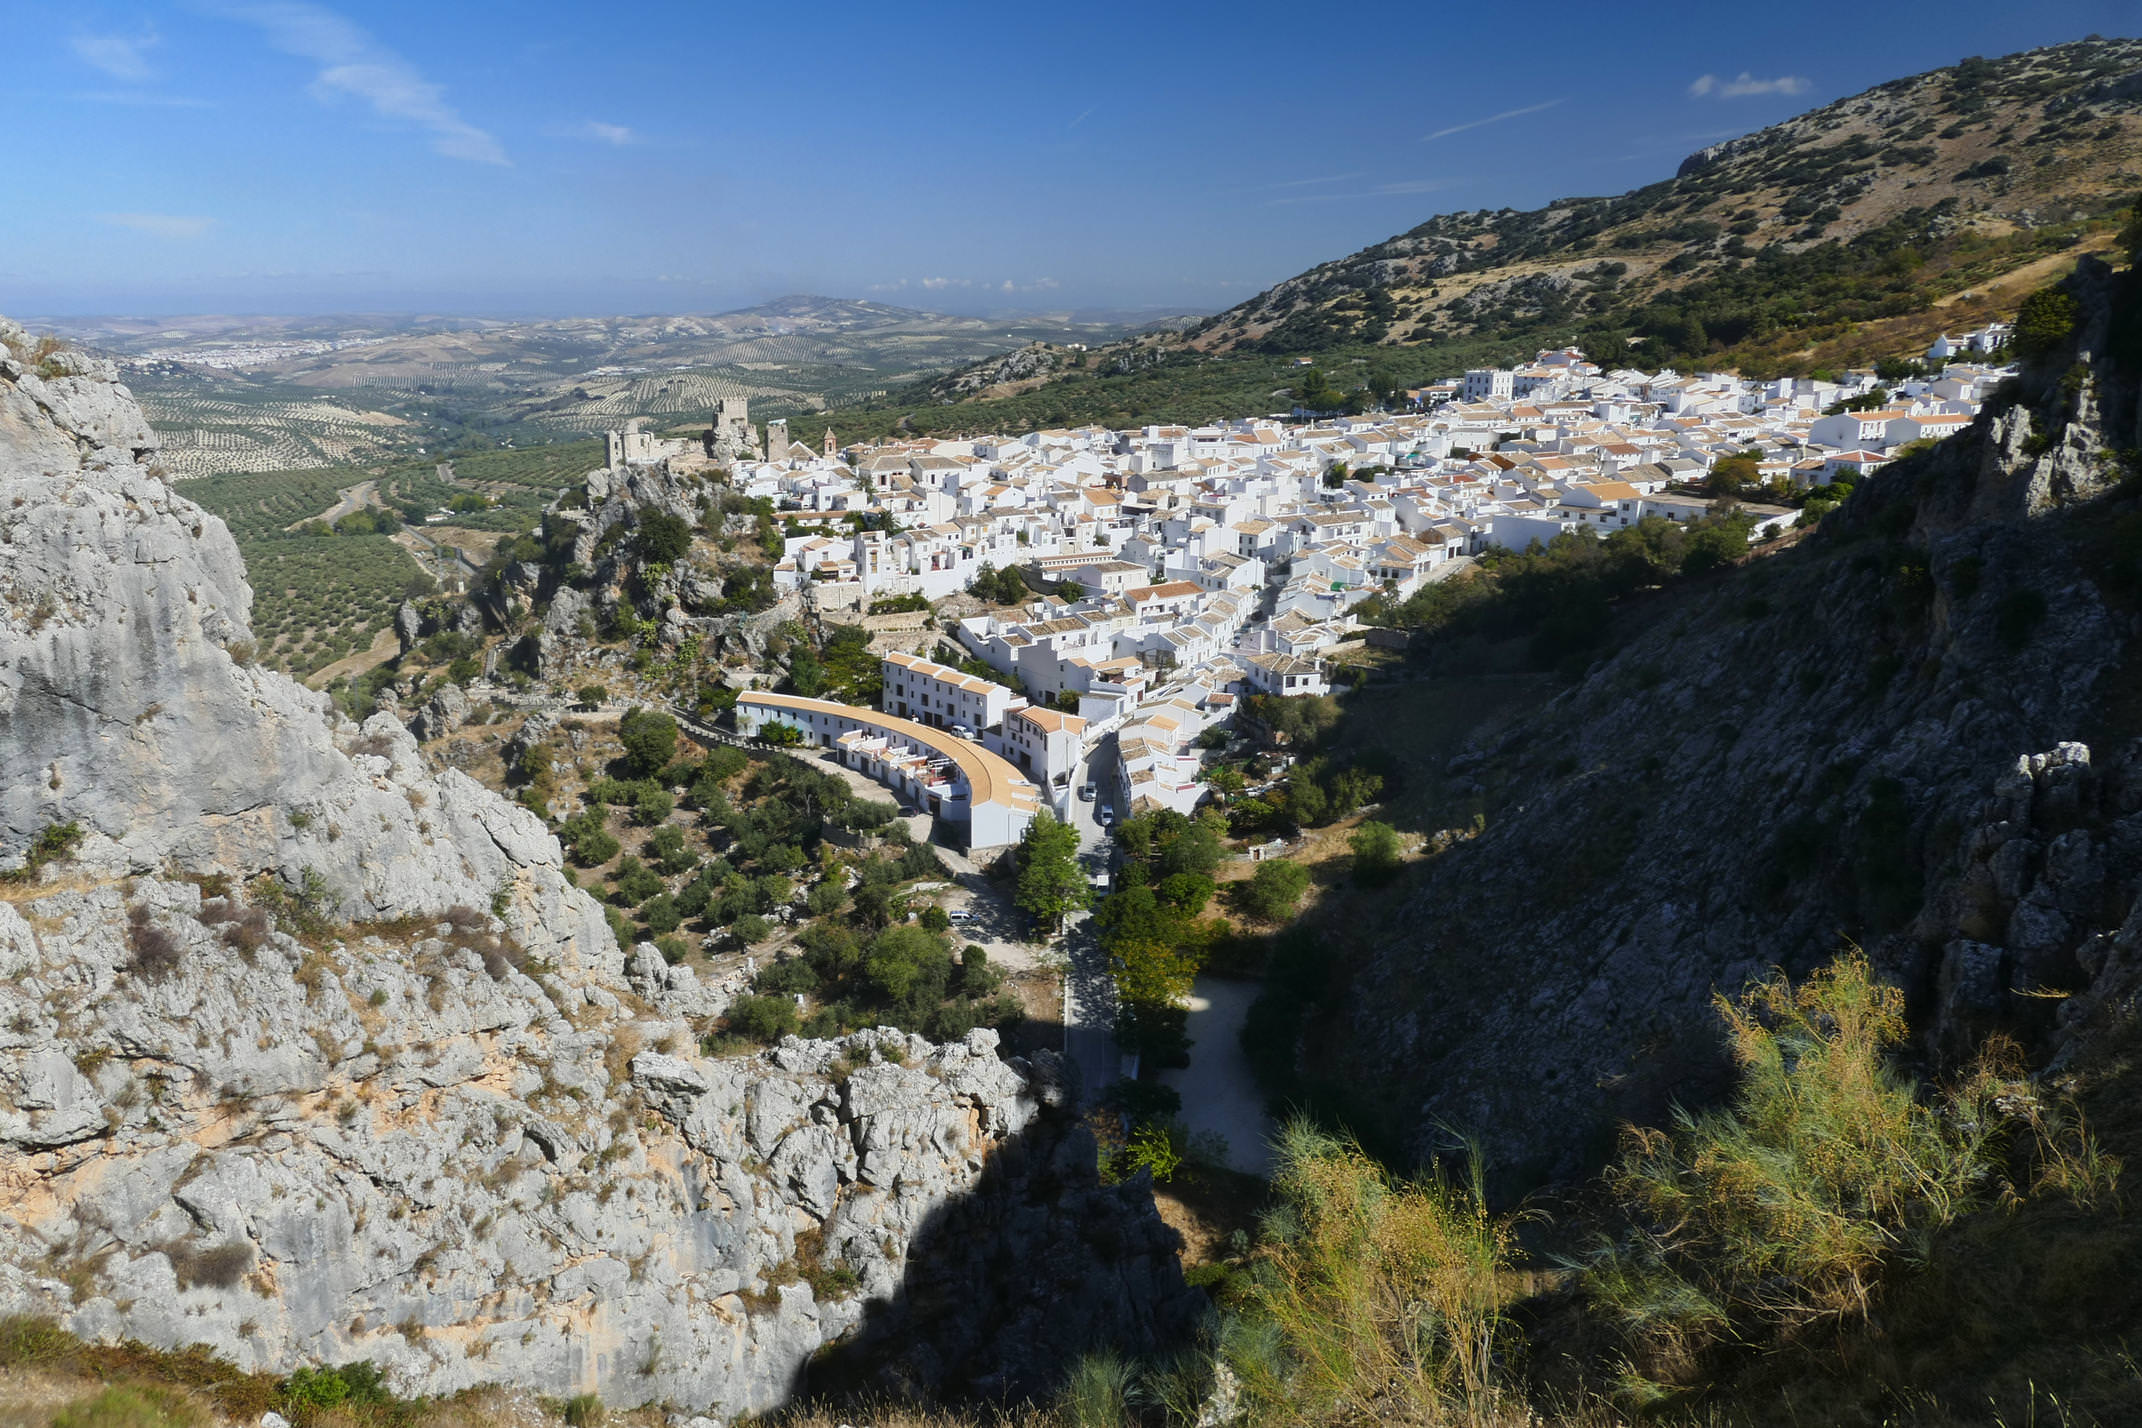 Looking down on the white village of Zuheros as you climb the drover's tracks